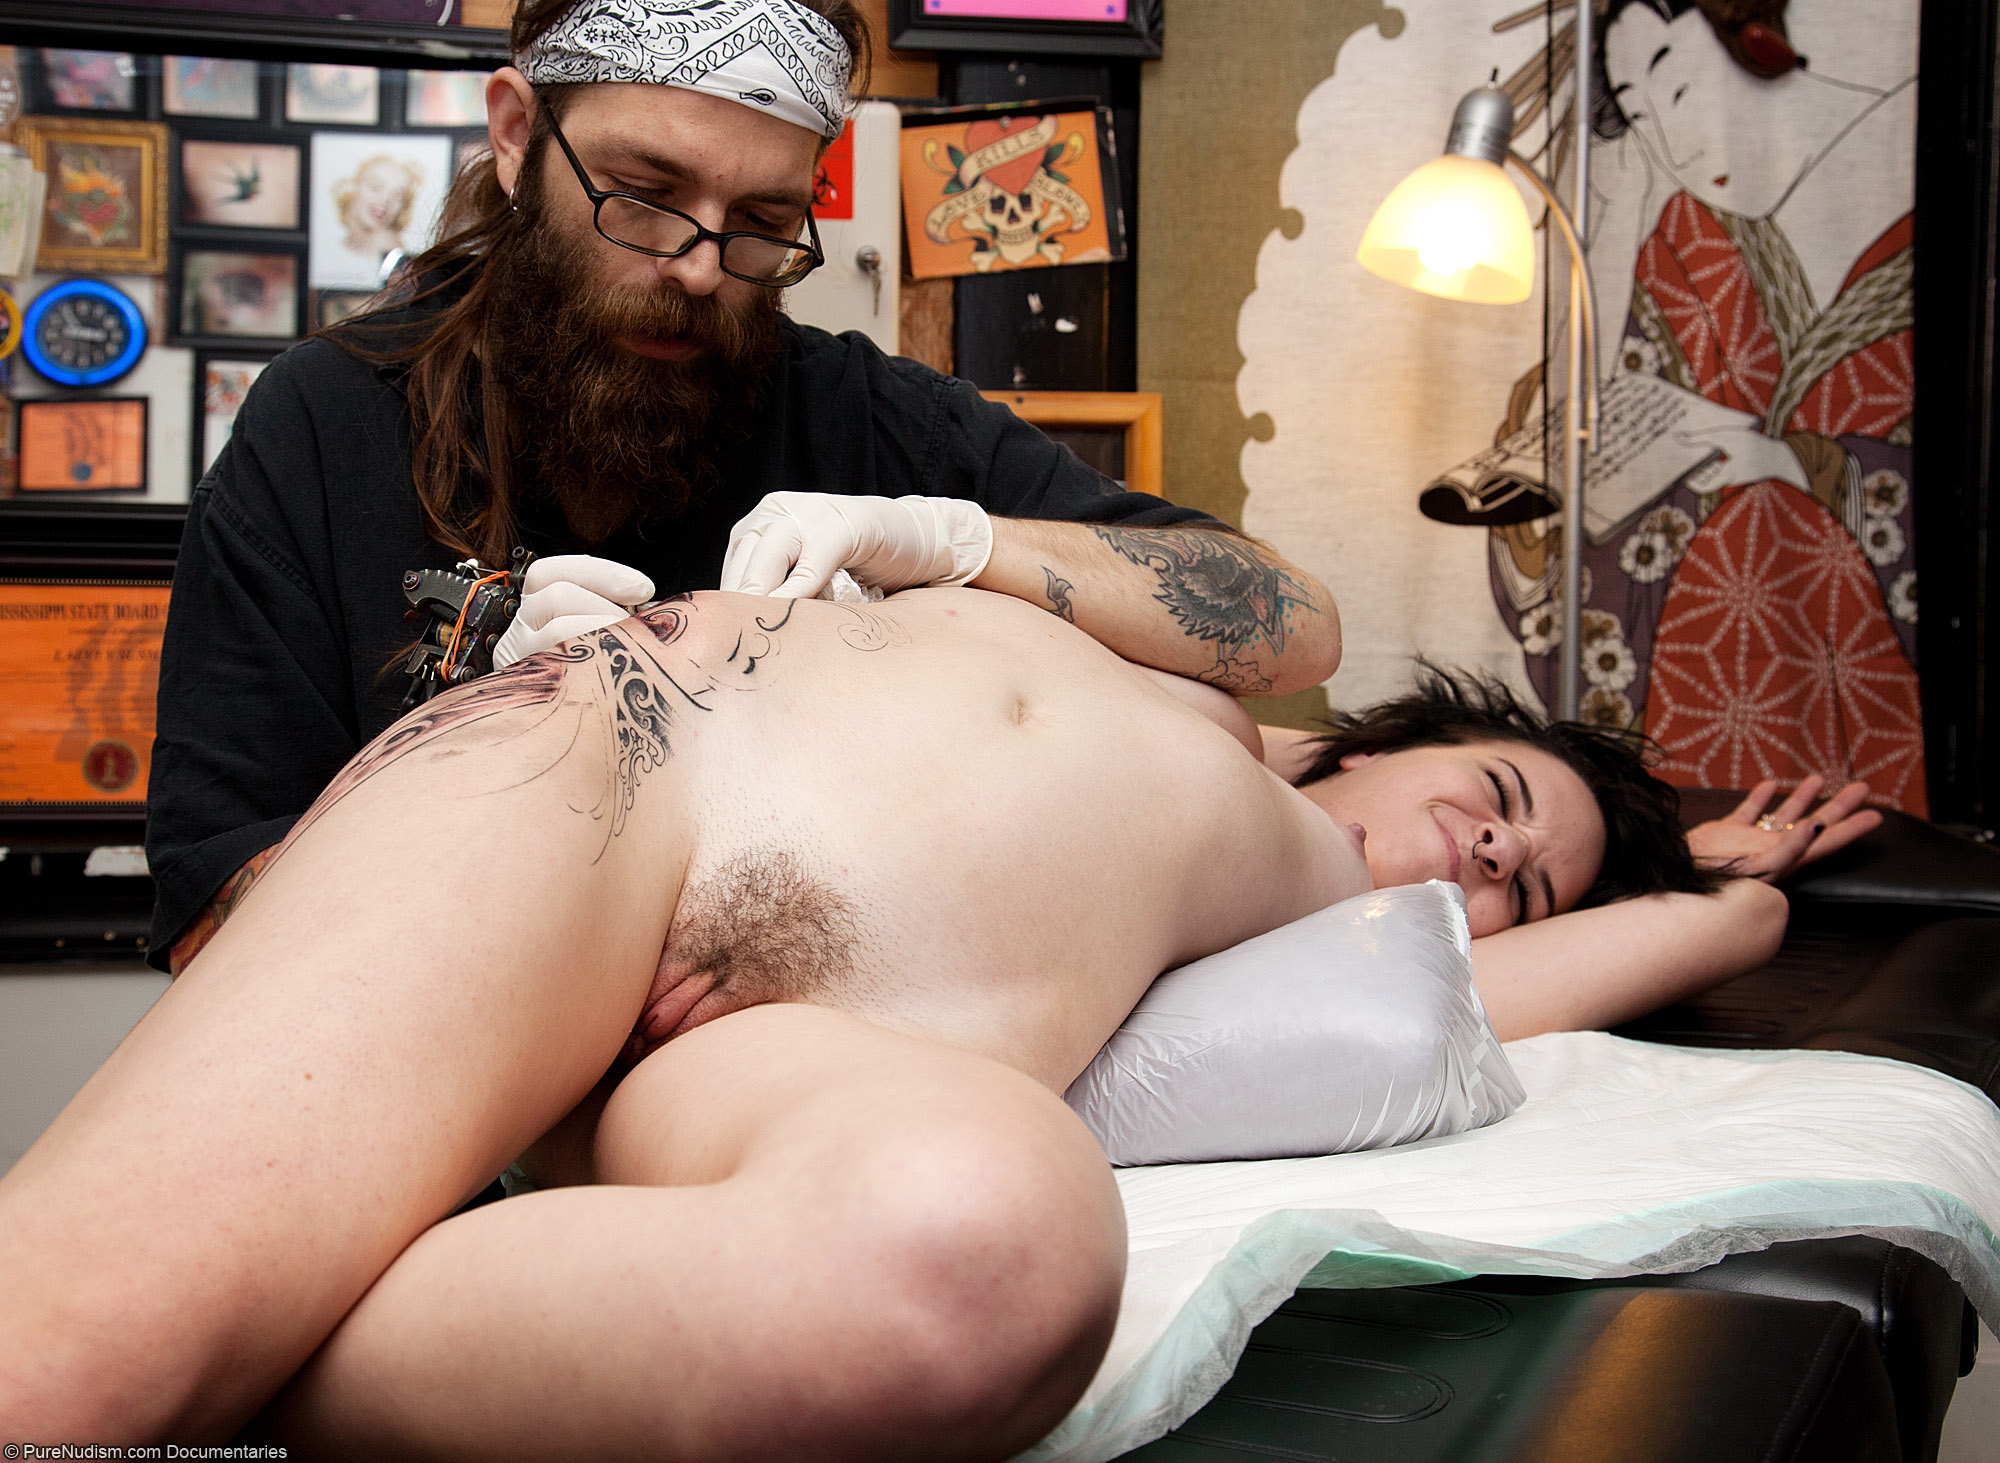 COM - Best Way to Get a New Tattoo Work is in the Nude Picture